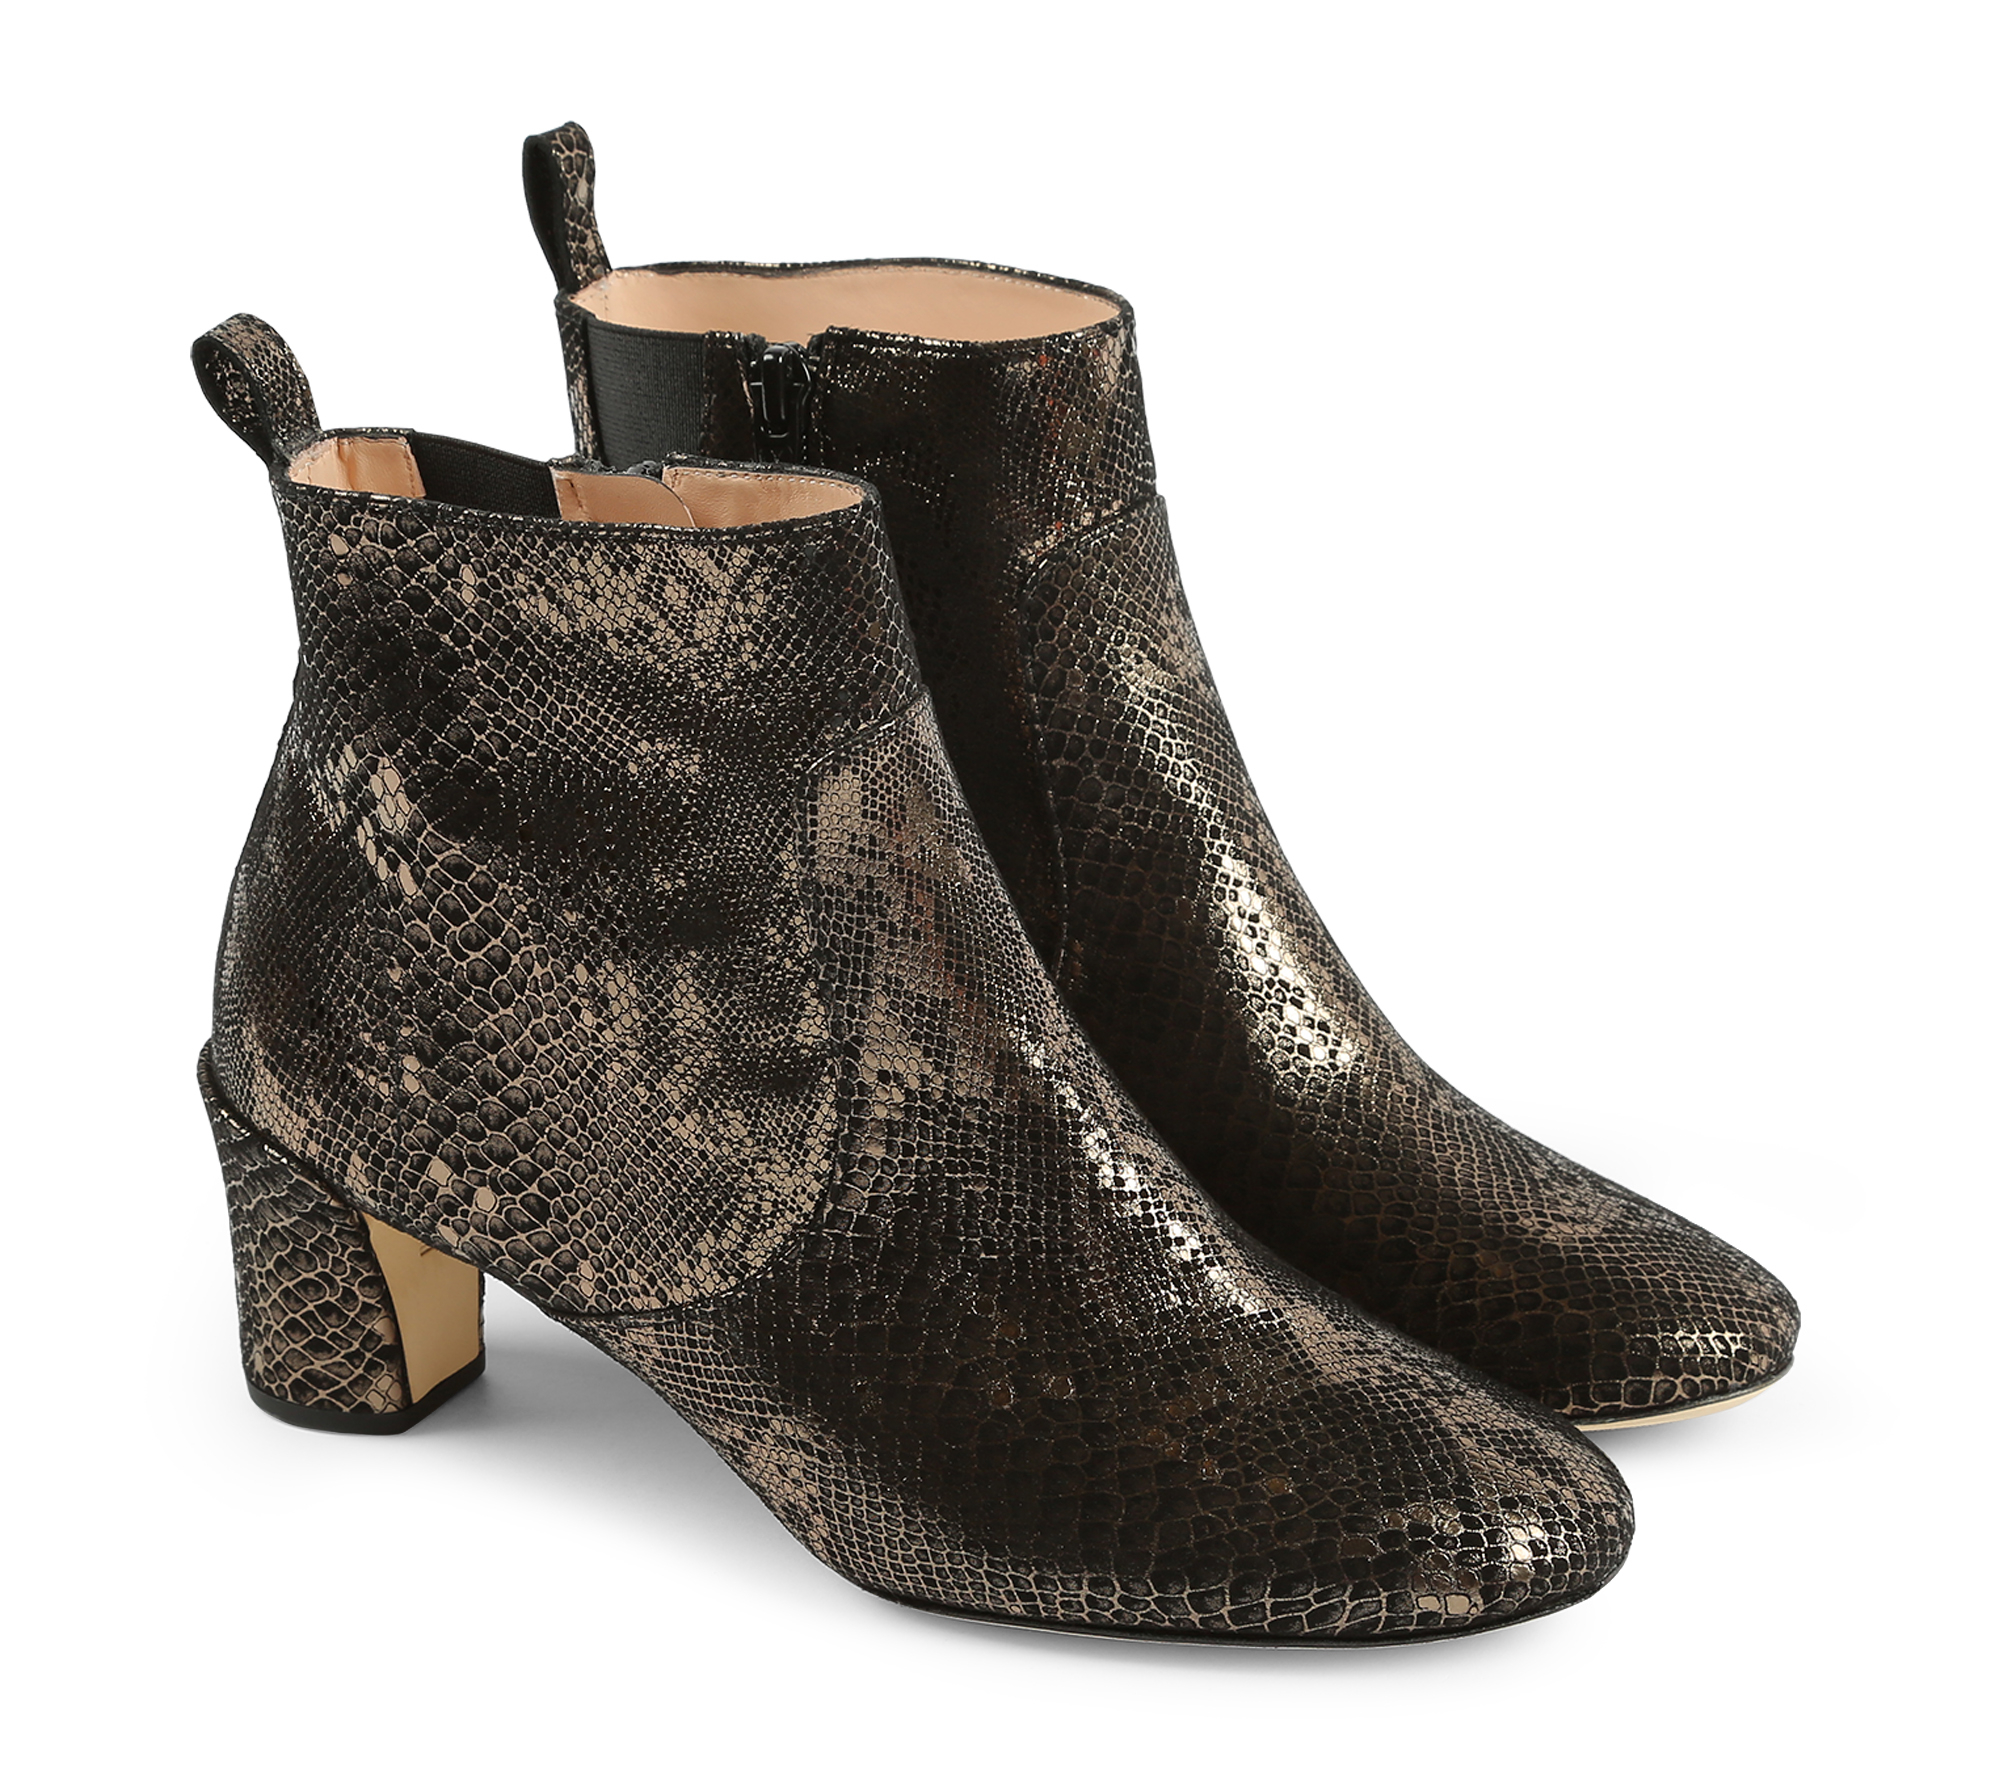 Glawdys boots